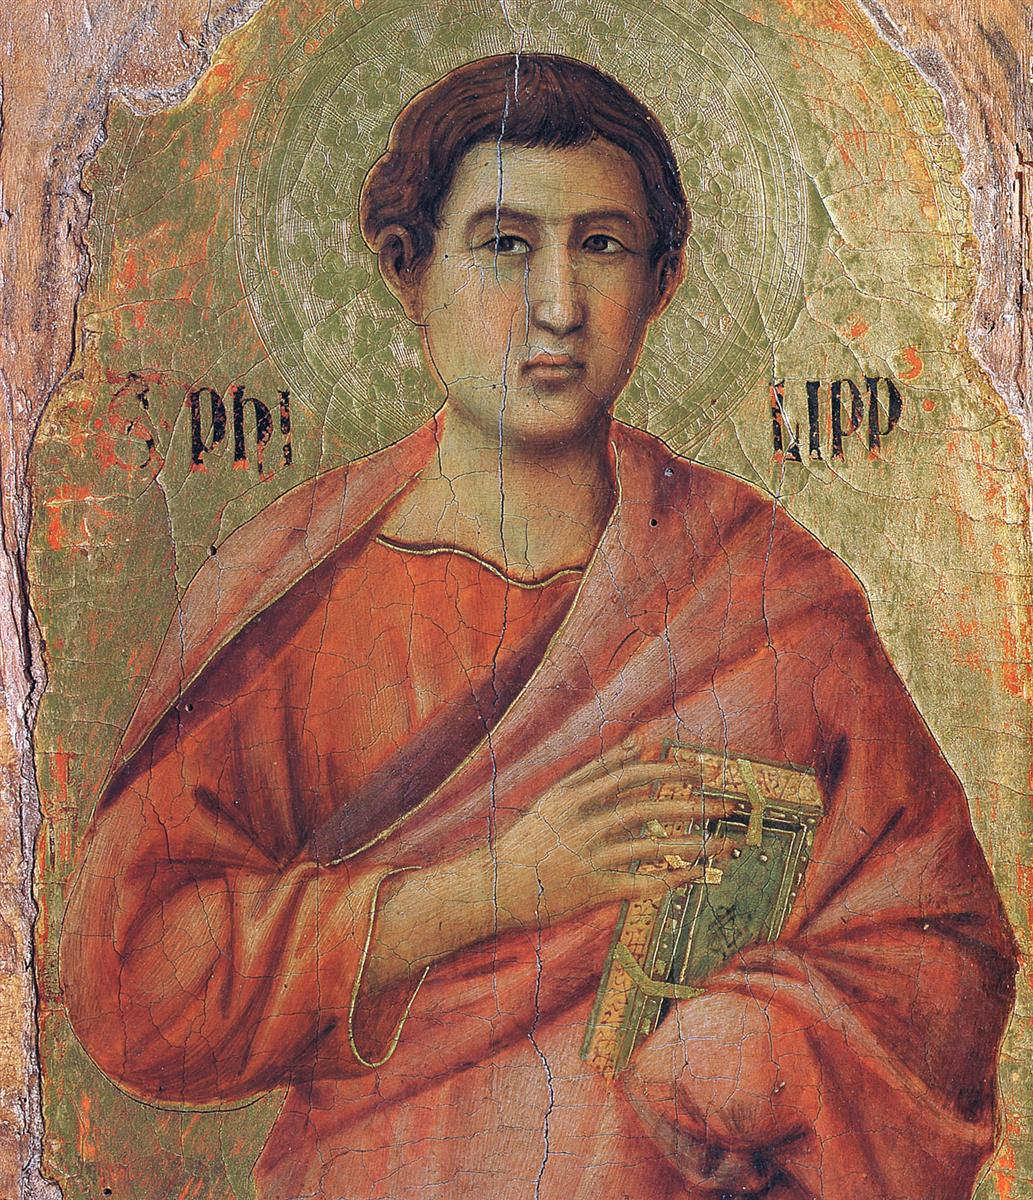 apostle-philip-1311.jpg!HD.jpg